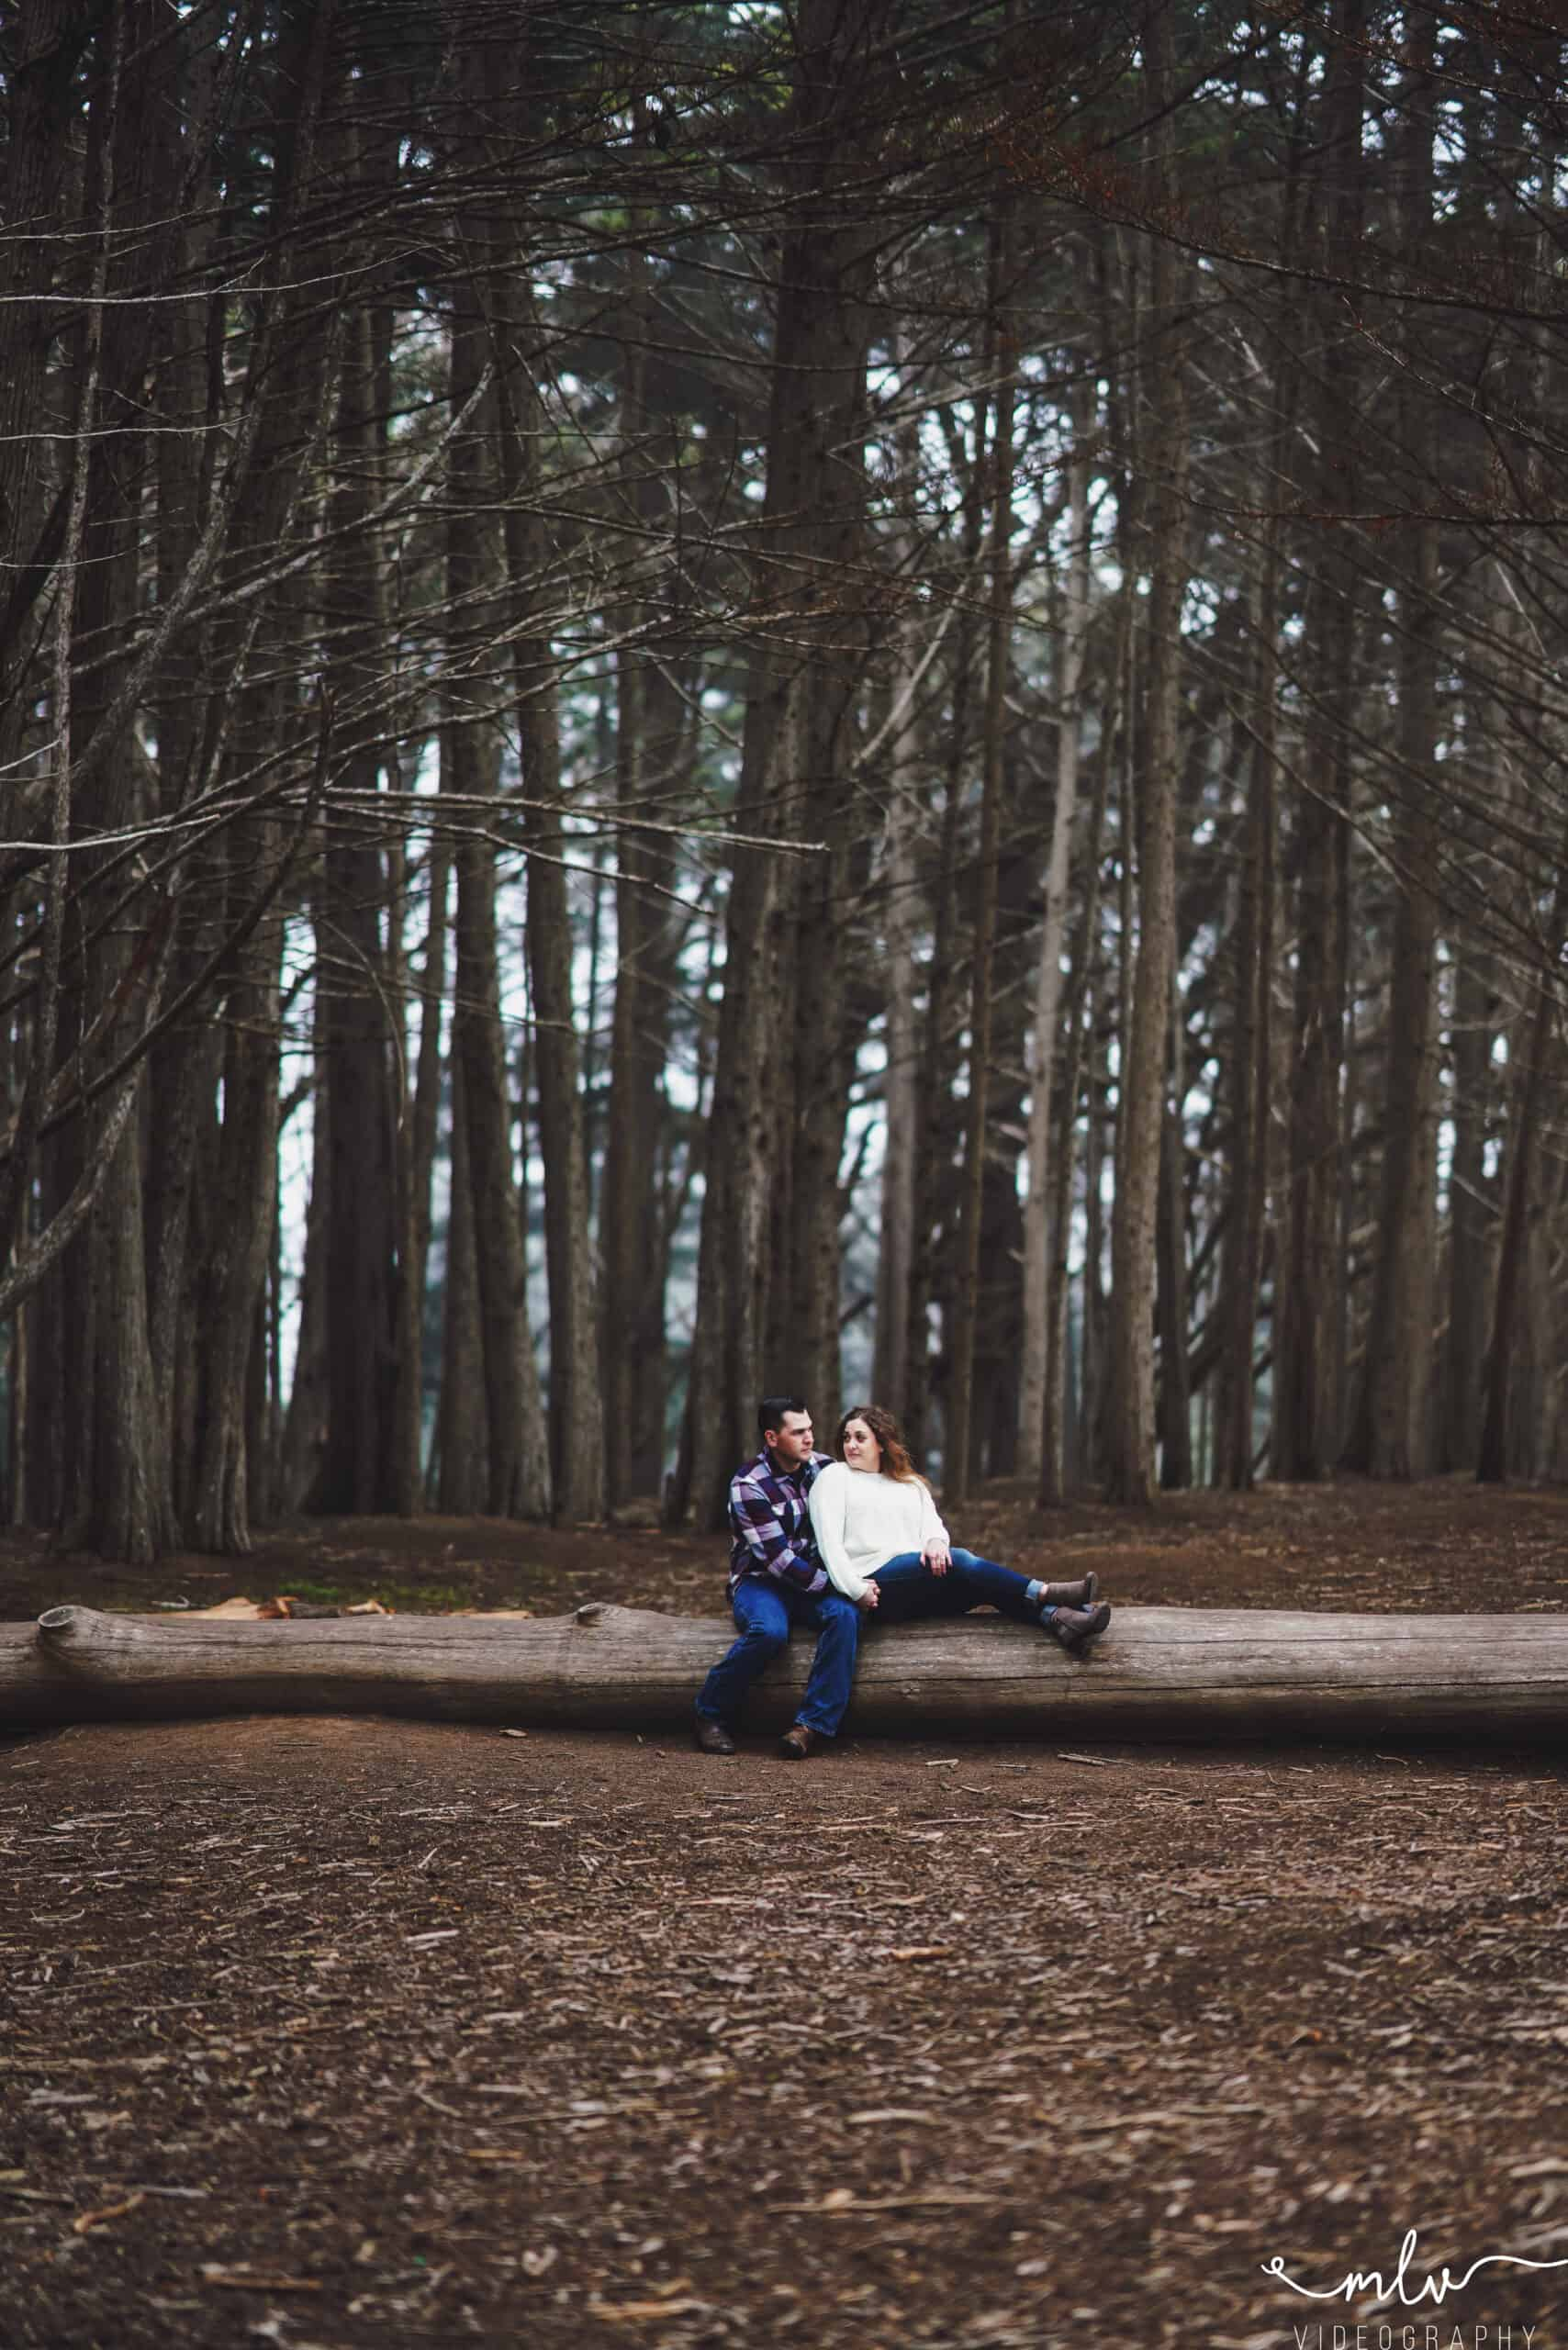 Engagement photography in Half Moon Bay California Seal Cove Cypress Tree Tunnel